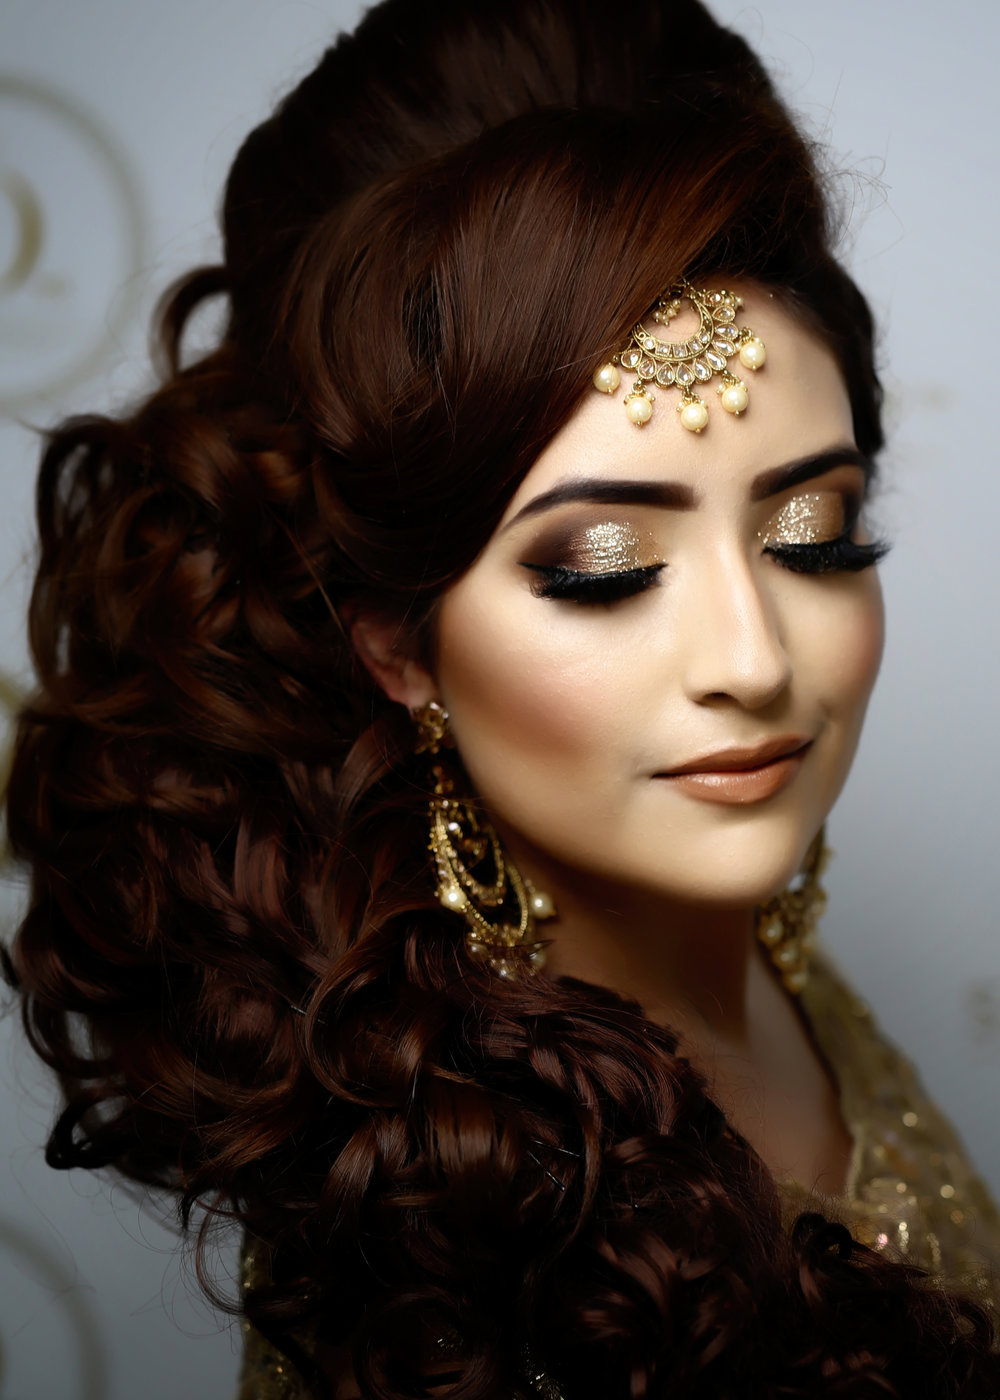 BRIDAL MAKEUP APPLICATION: - This course covers the fundamentals of bridal makeup application:2 DAY COURSE